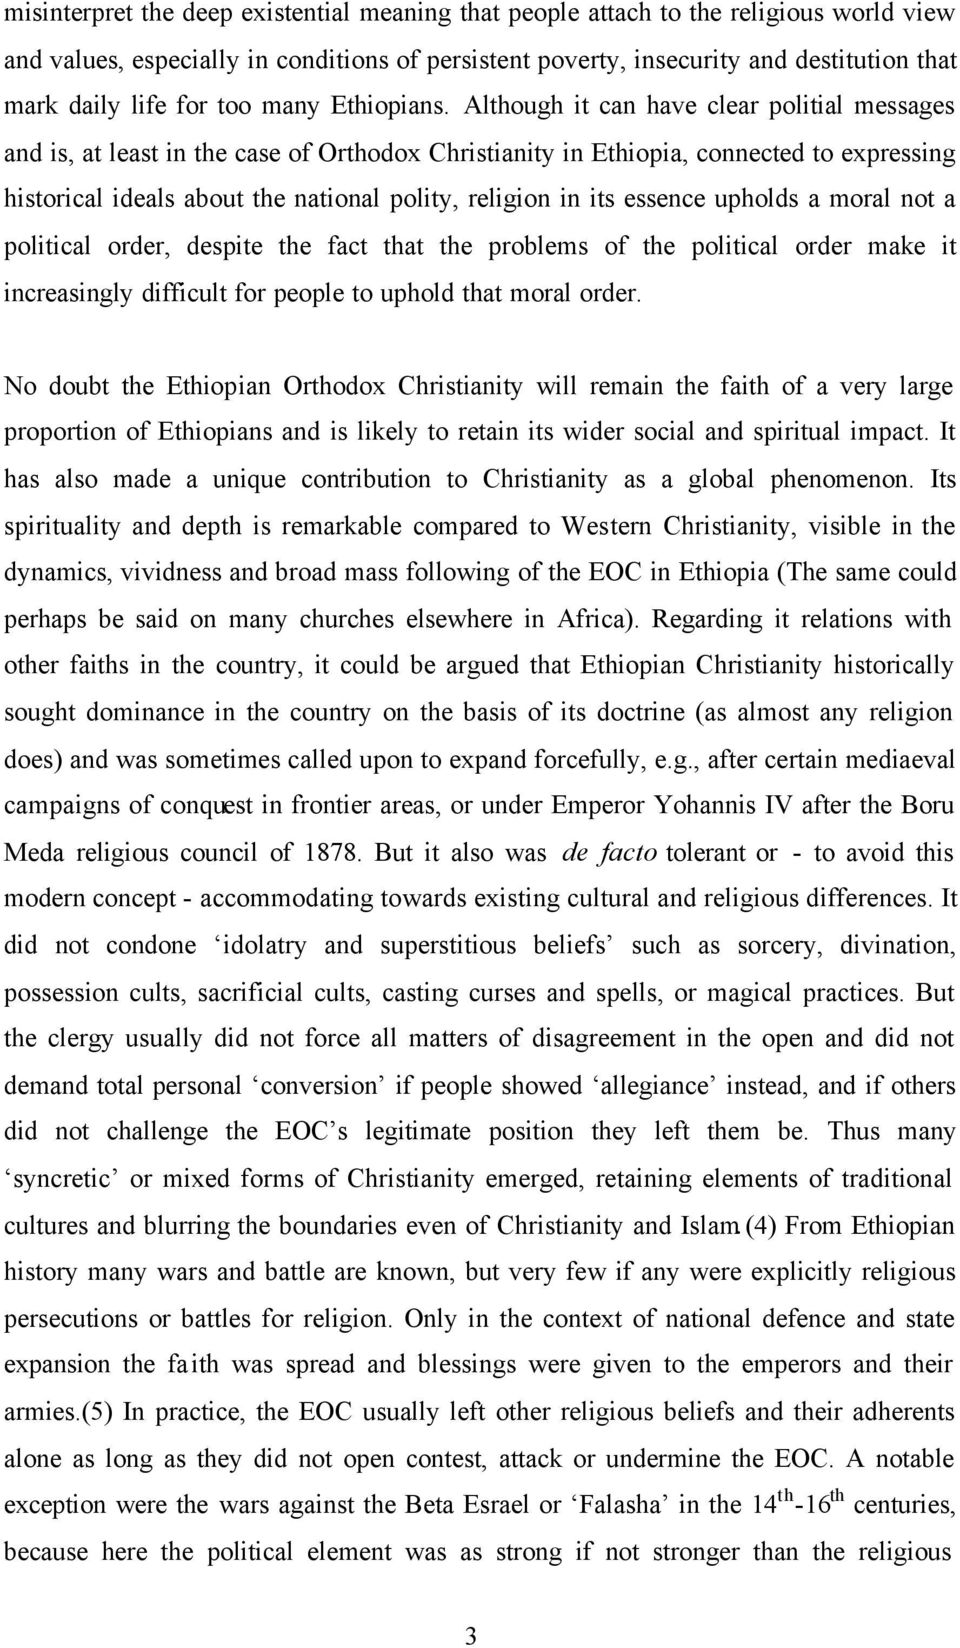 Although it can have clear politial messages and is, at least in the case of Orthodox Christianity in Ethiopia, connected to expressing historical ideals about the national polity, religion in its